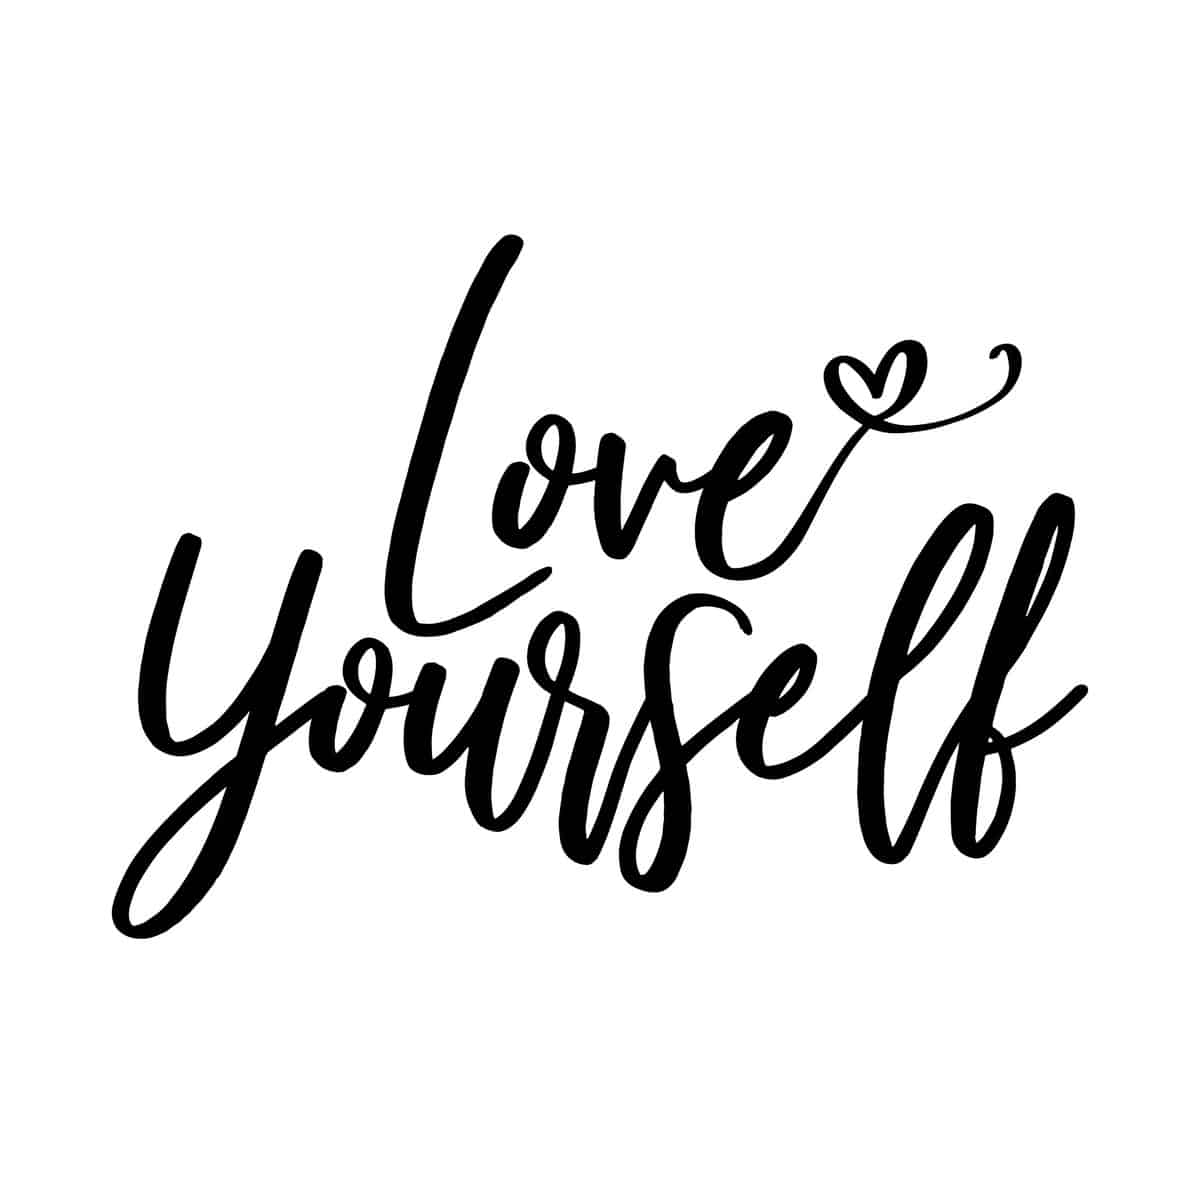 Love Yourself and Feel Good!